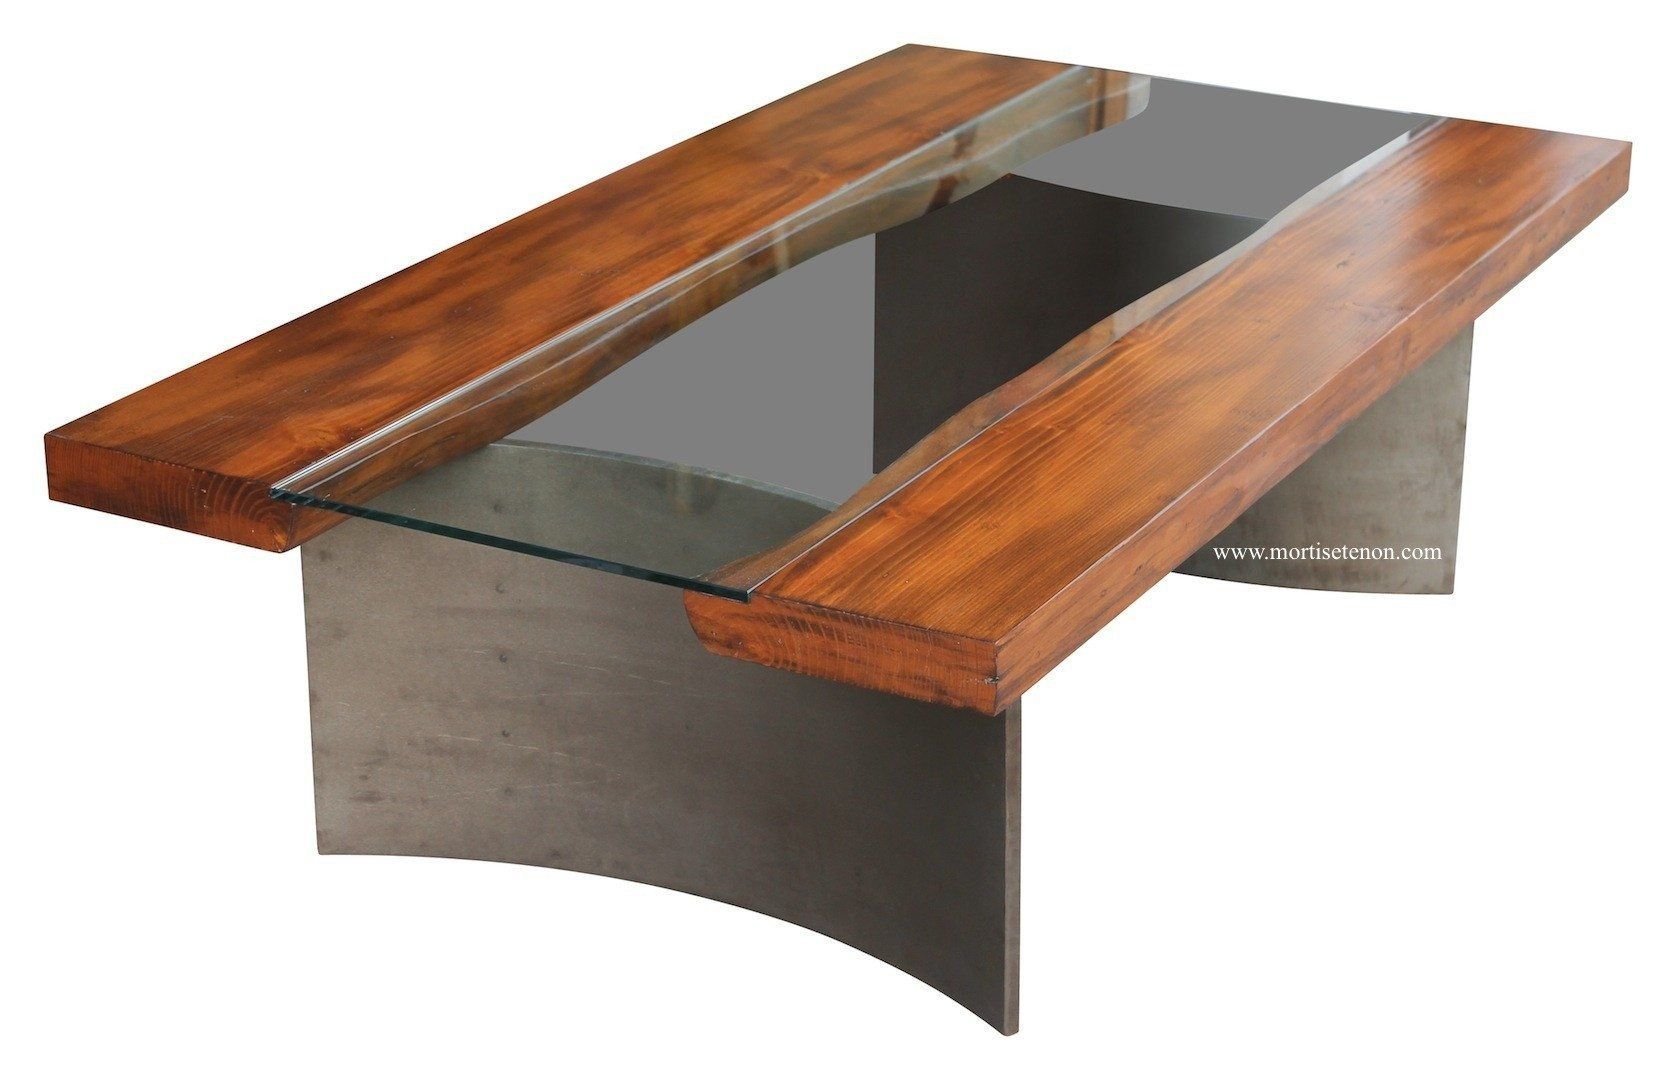 Reclaimed Wood Free Edge Coffee Table With Industrial Metal Legs Tea Table Design Recycle Timber Wood [ 1080 x 1676 Pixel ]